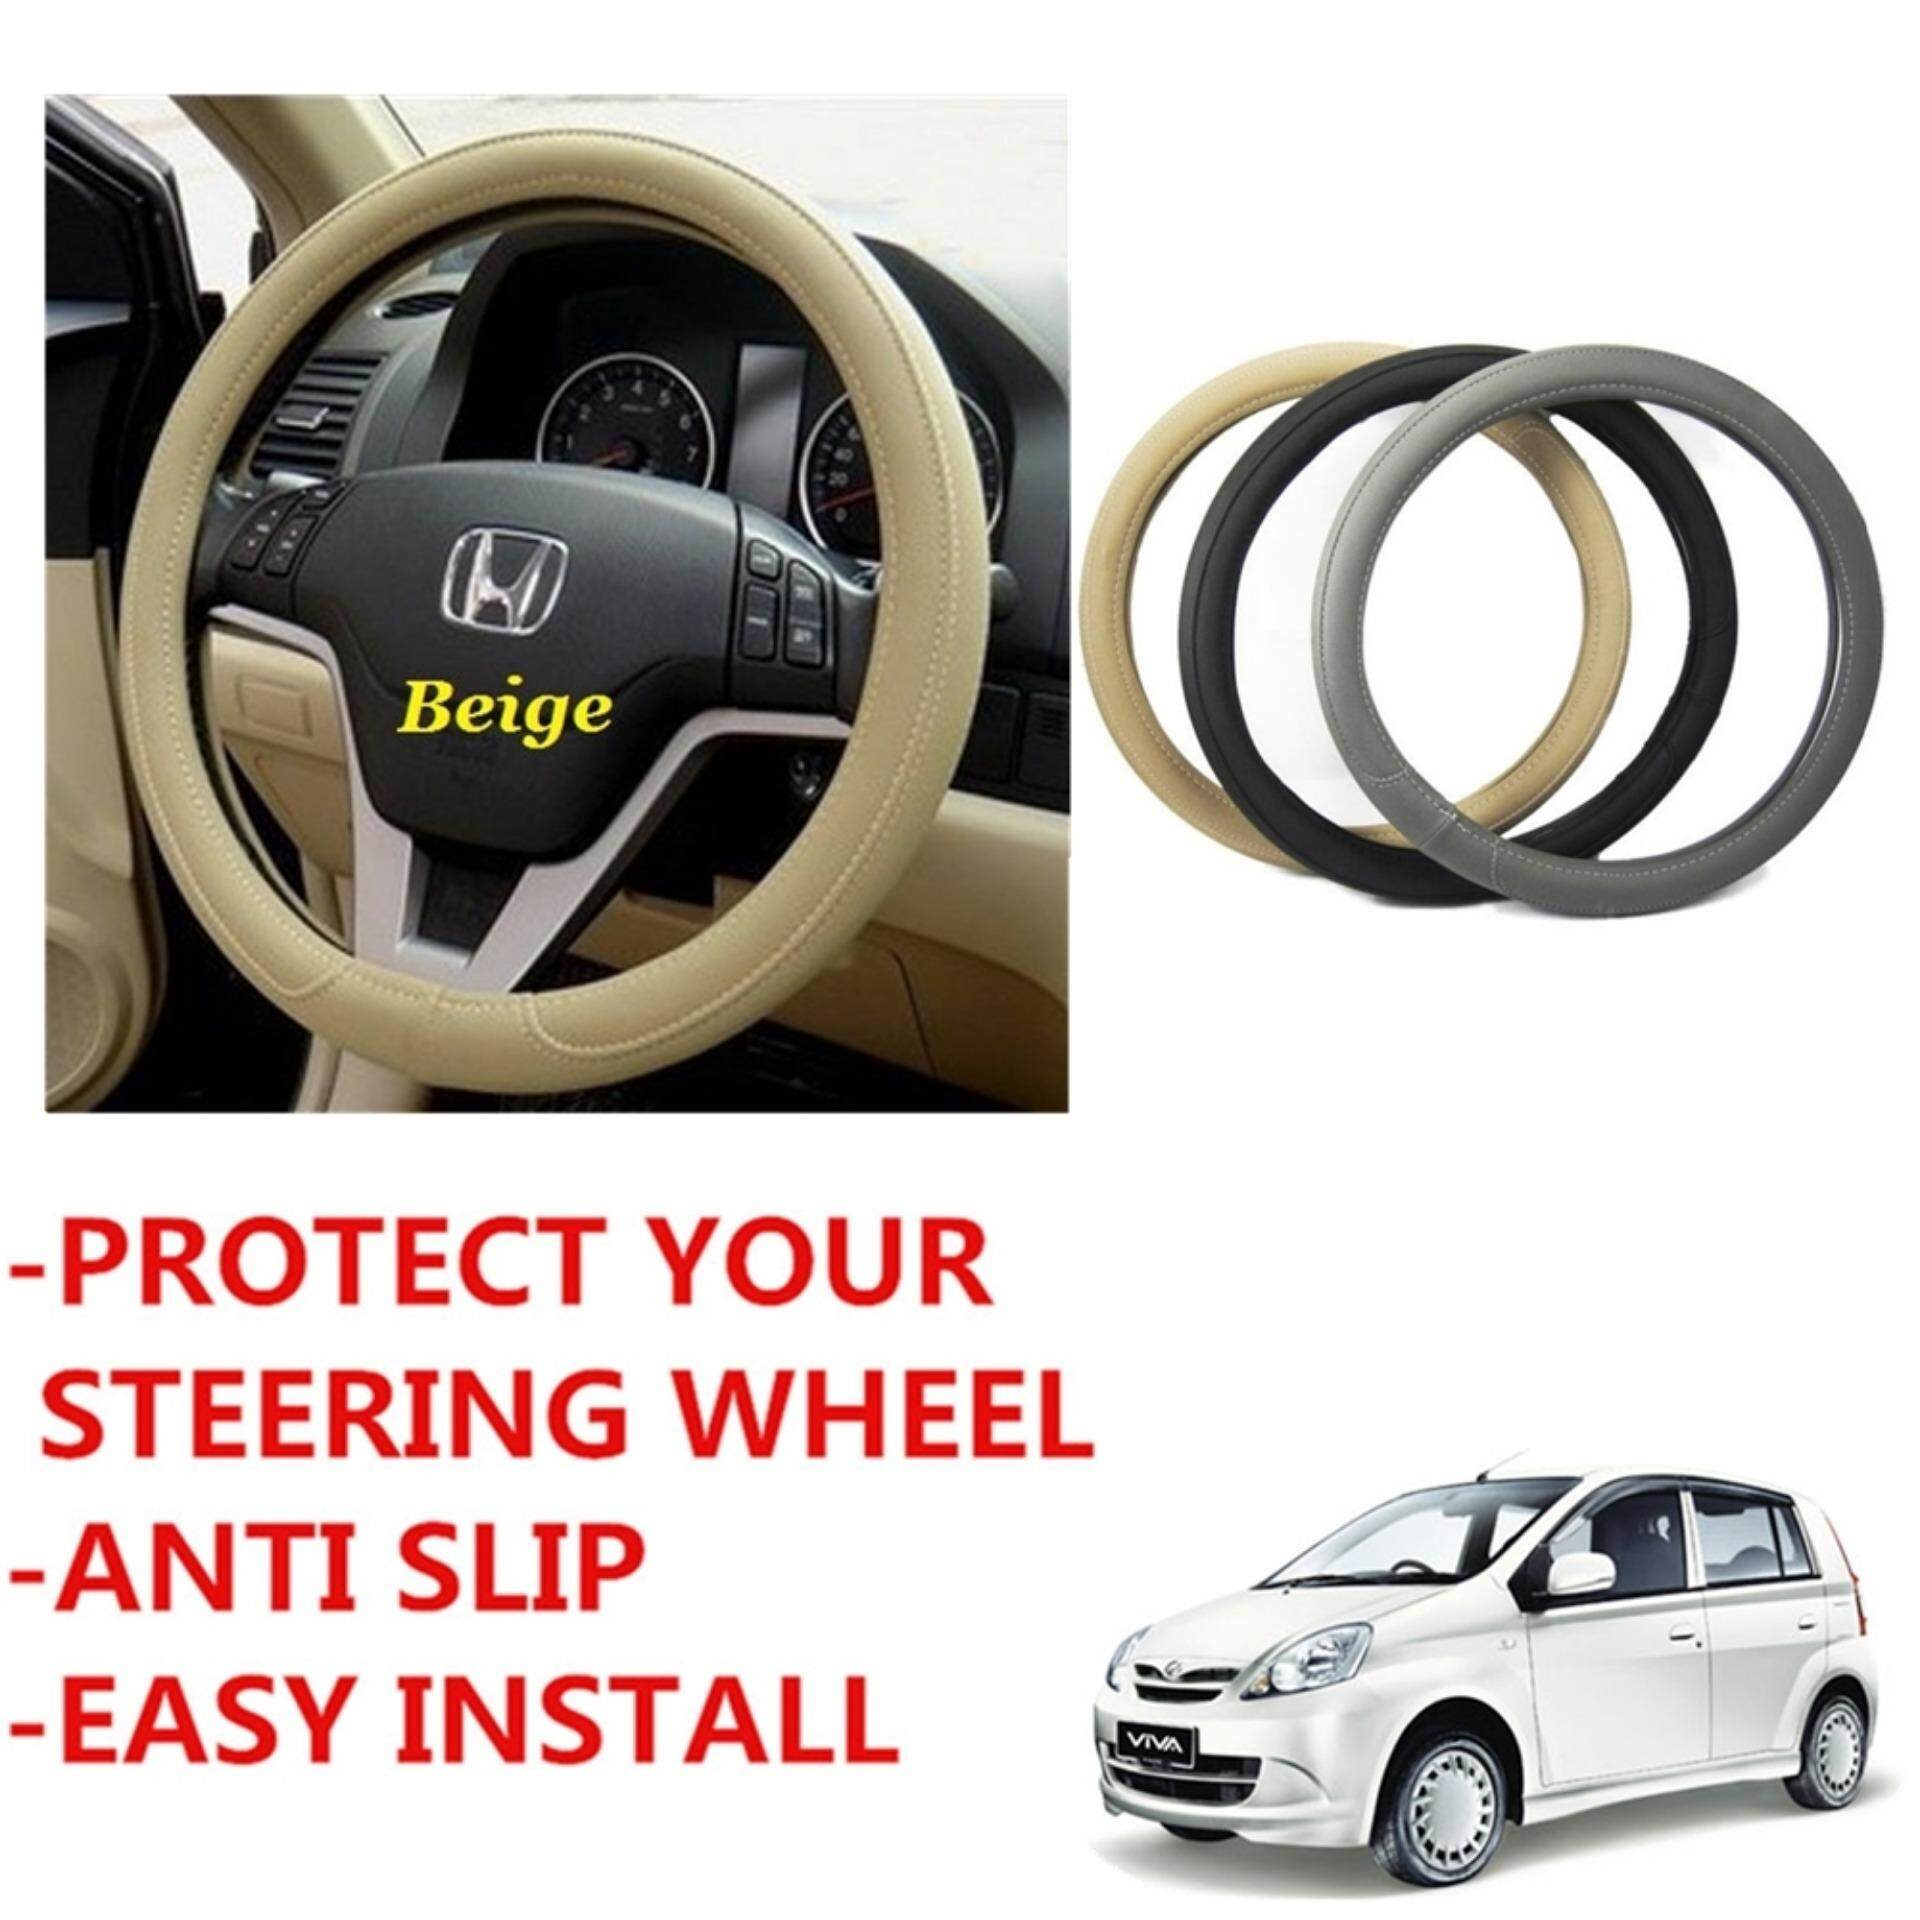 Circle Cool 7425 (BEIGE) Easy Grip Anti Slip High Grade Leather Steering Wheel Cover For Perodua Viva